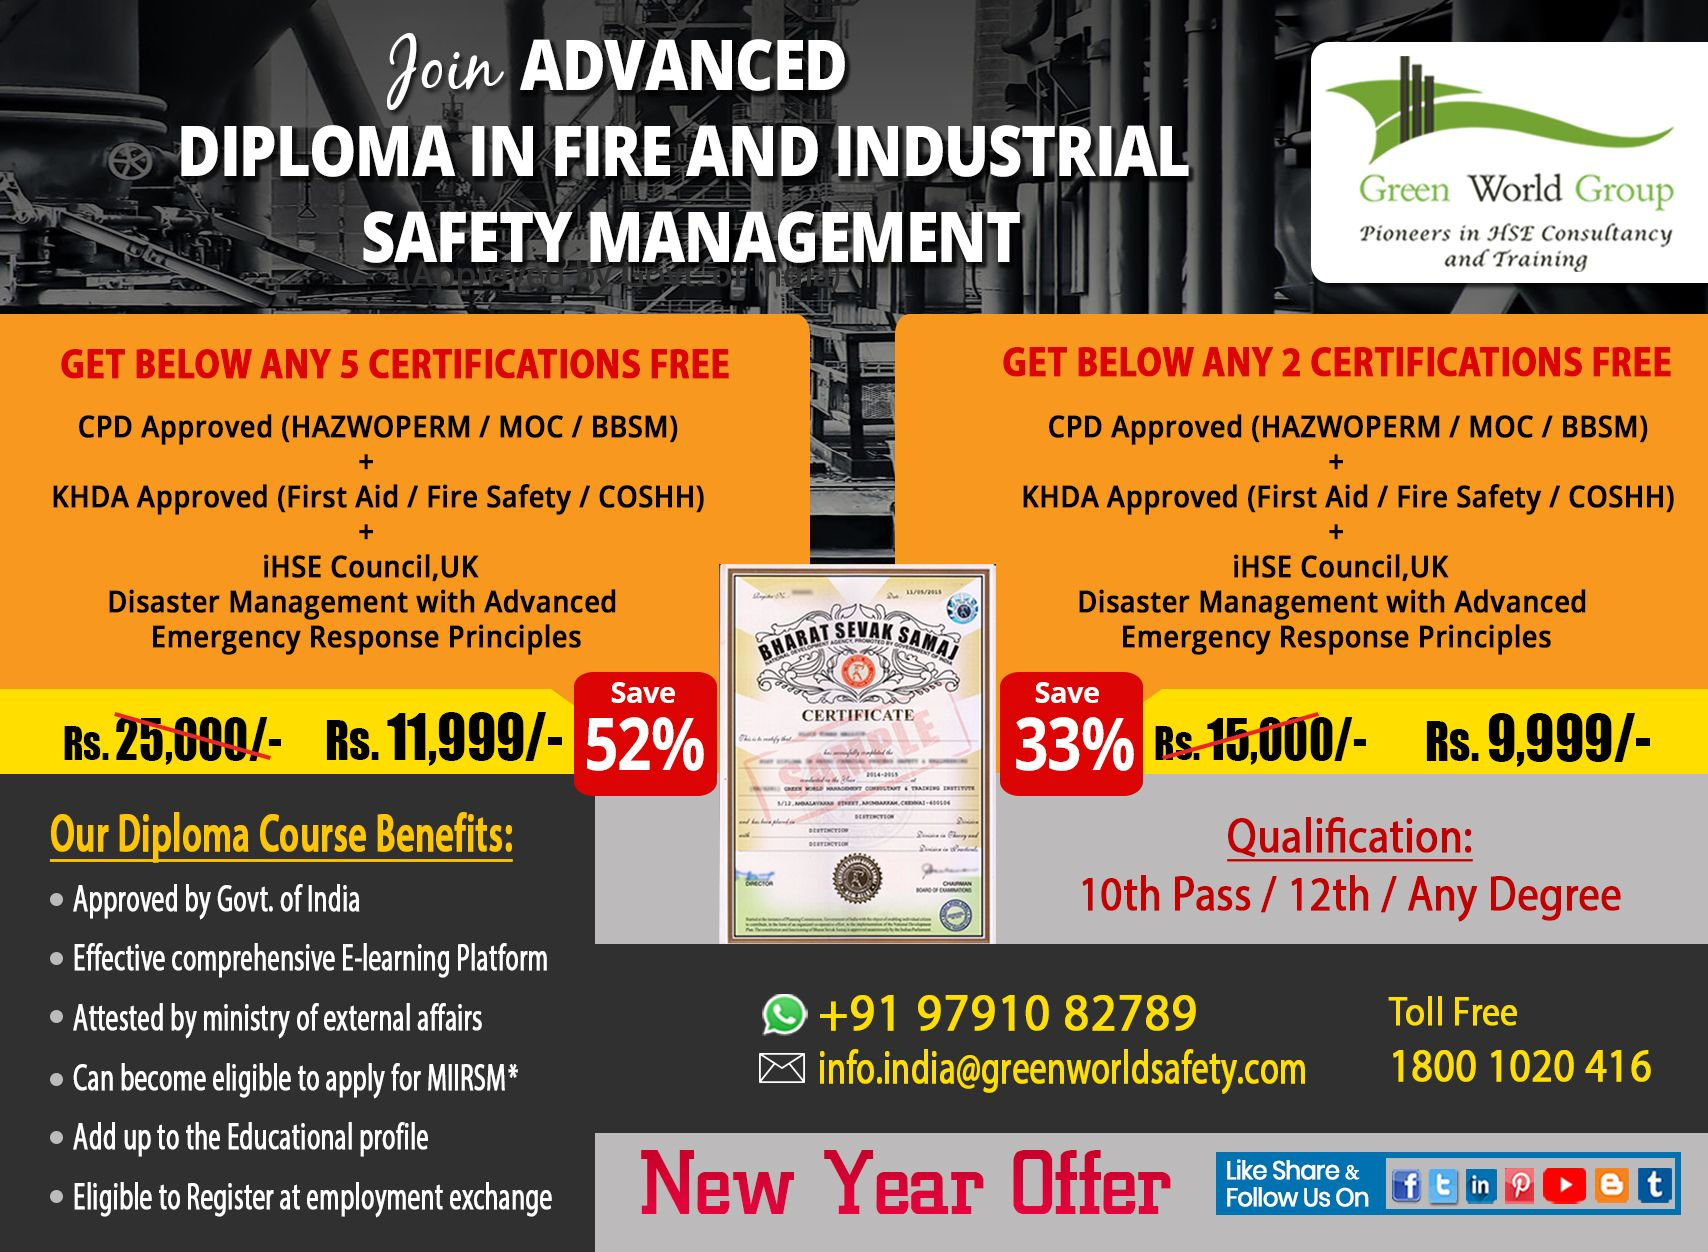 Join Advanced Diploma in Fire and Industrial Safety